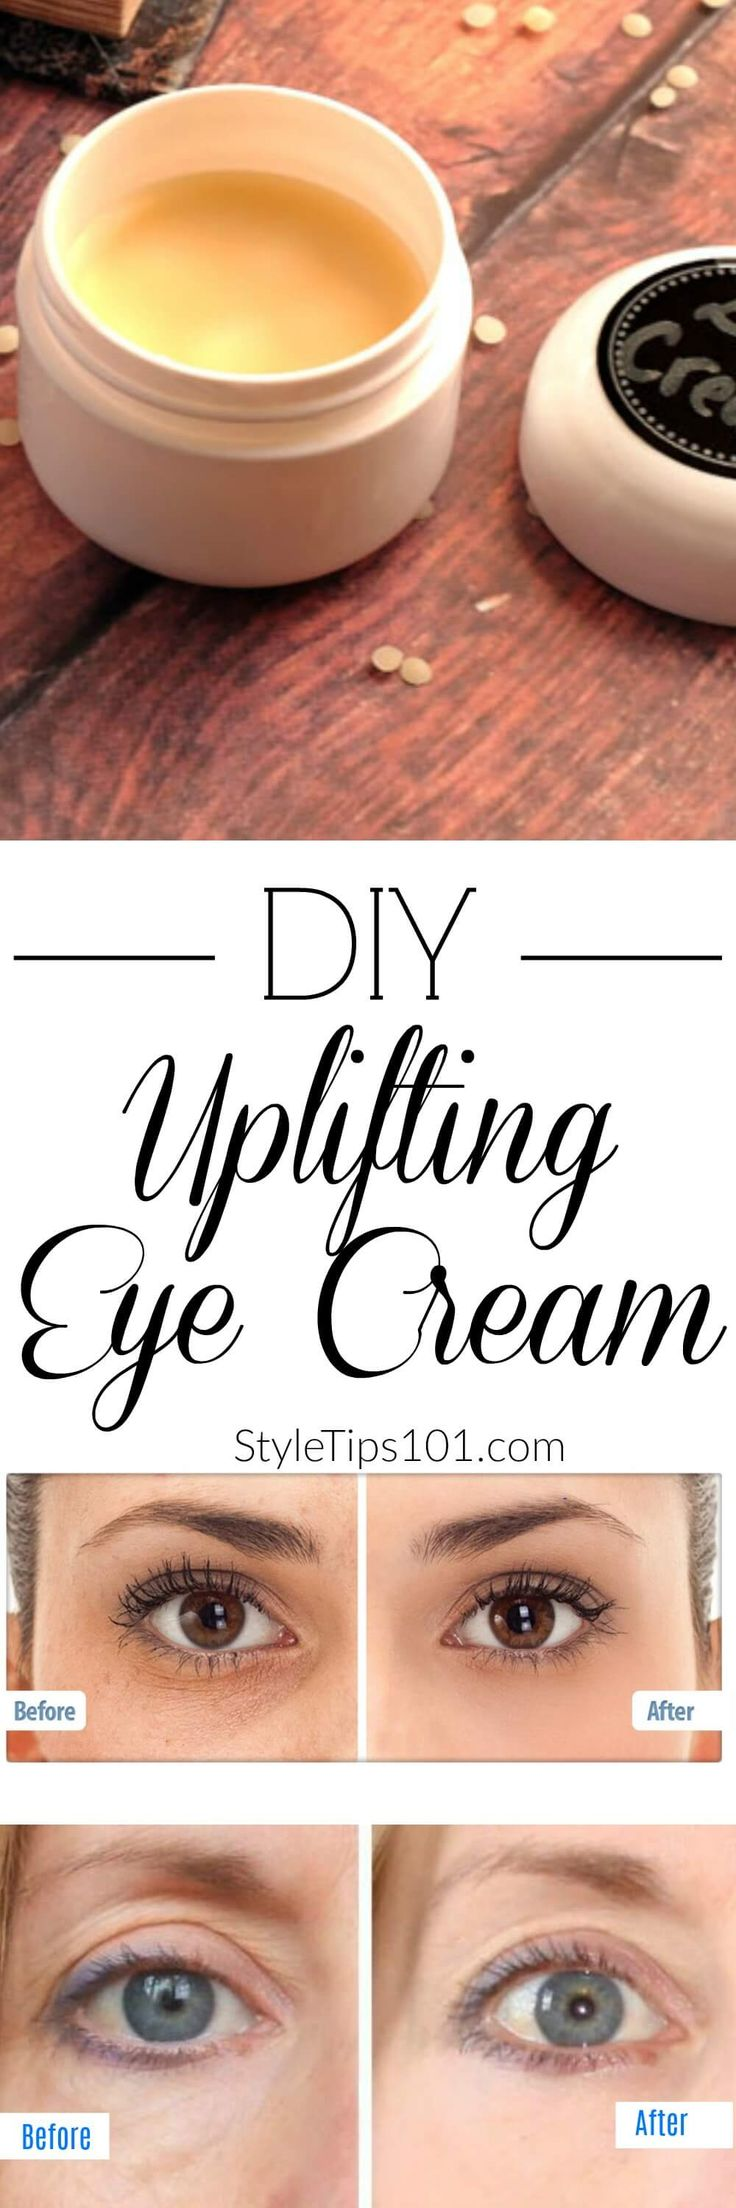 100% all natural ingredients to de-puff tired eyes.